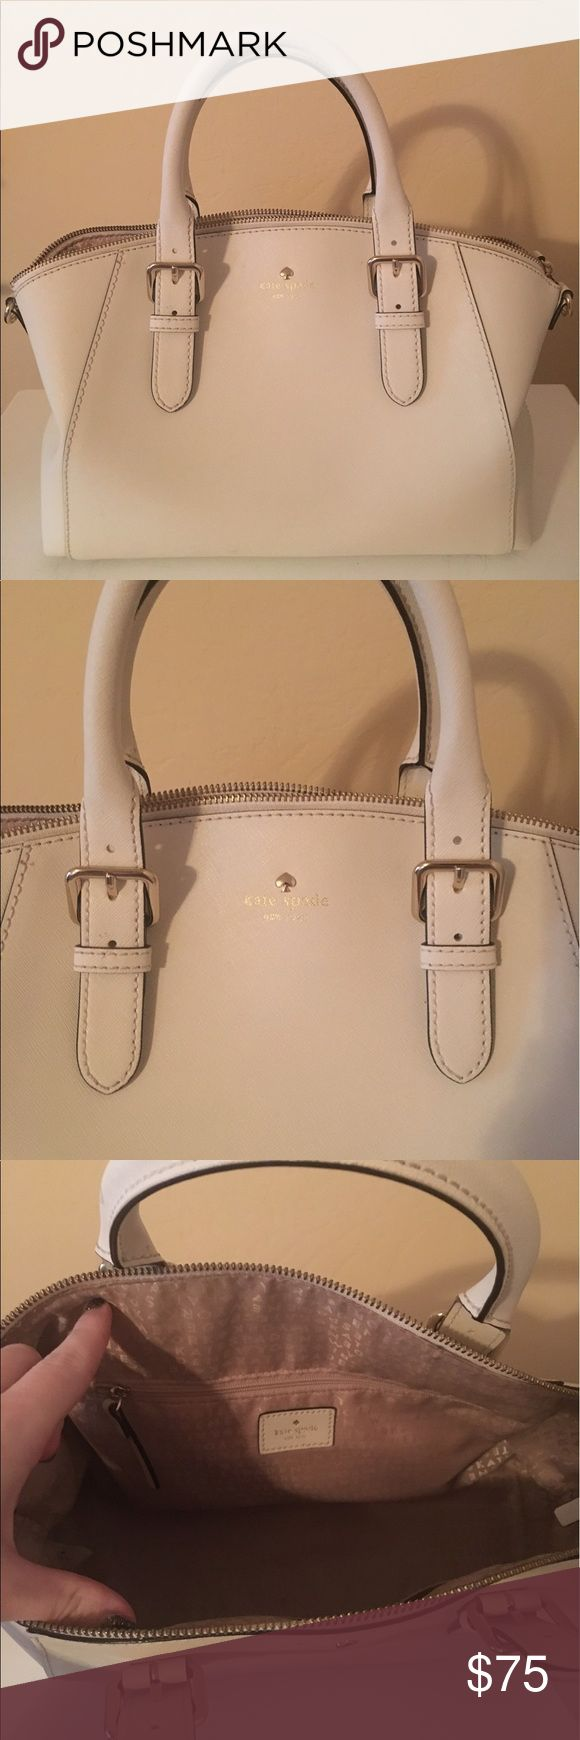 Kate Spade Purse Beautiful light cream purse, in great condition. Except one small spot on very bottom of purse. kate spade Bags Satchels